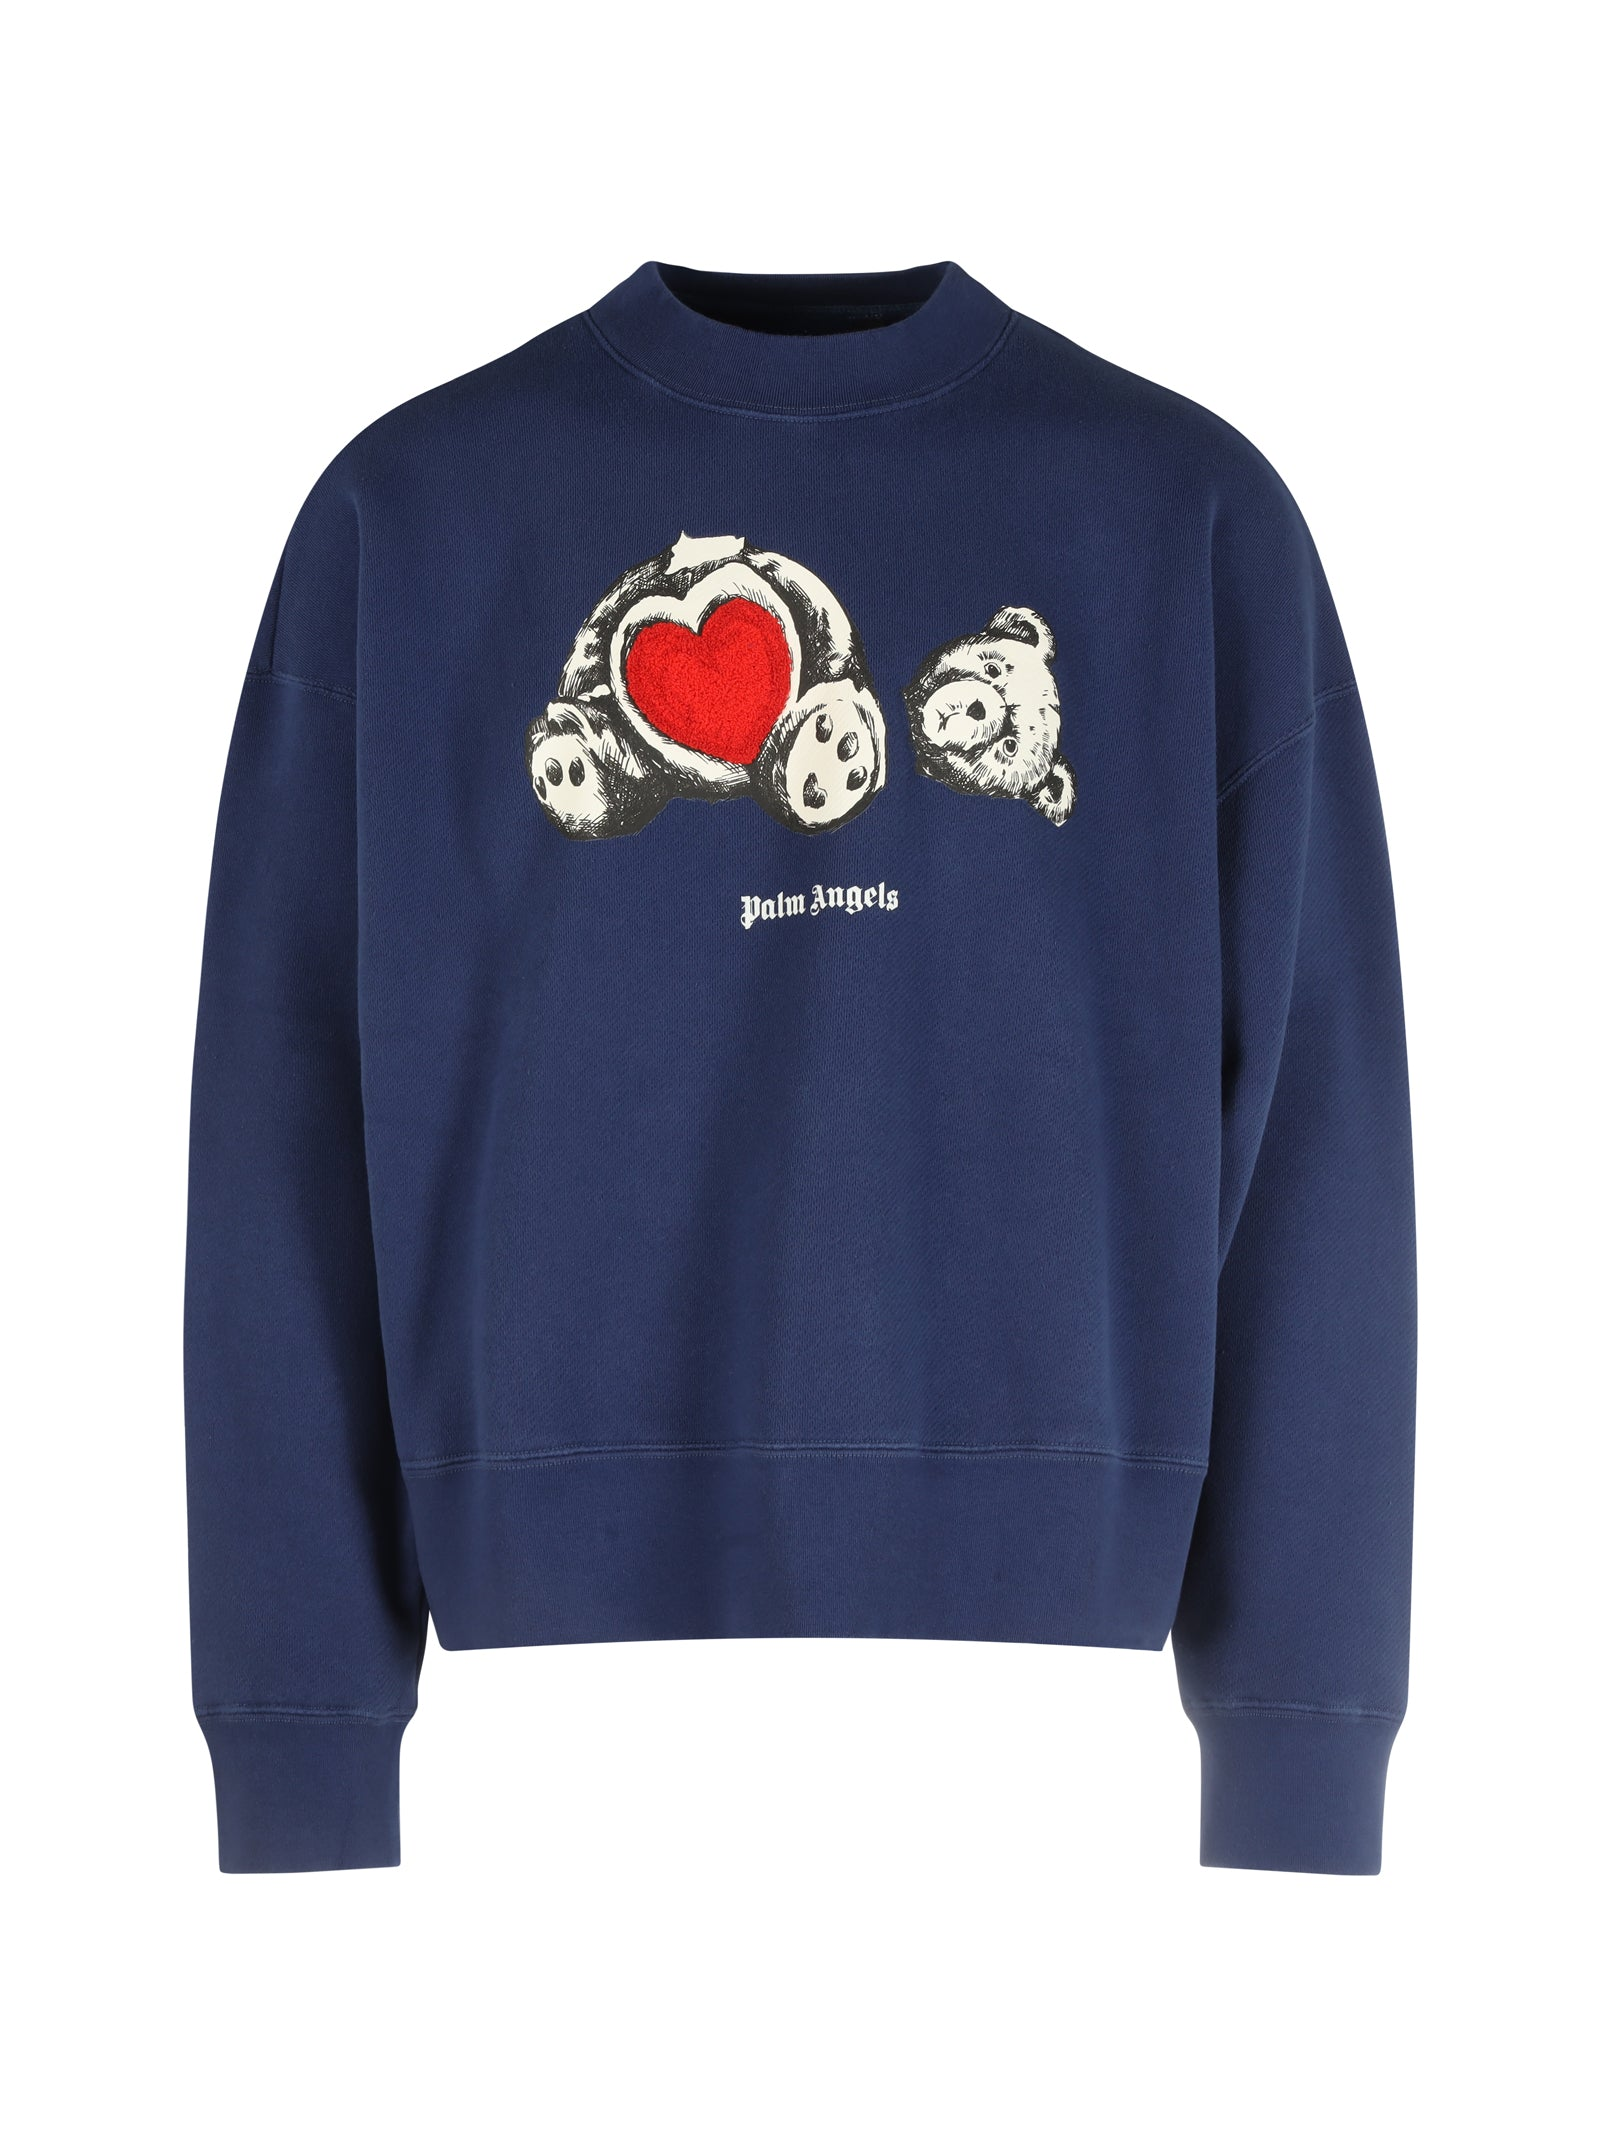 sweatshirt with print and embroidery